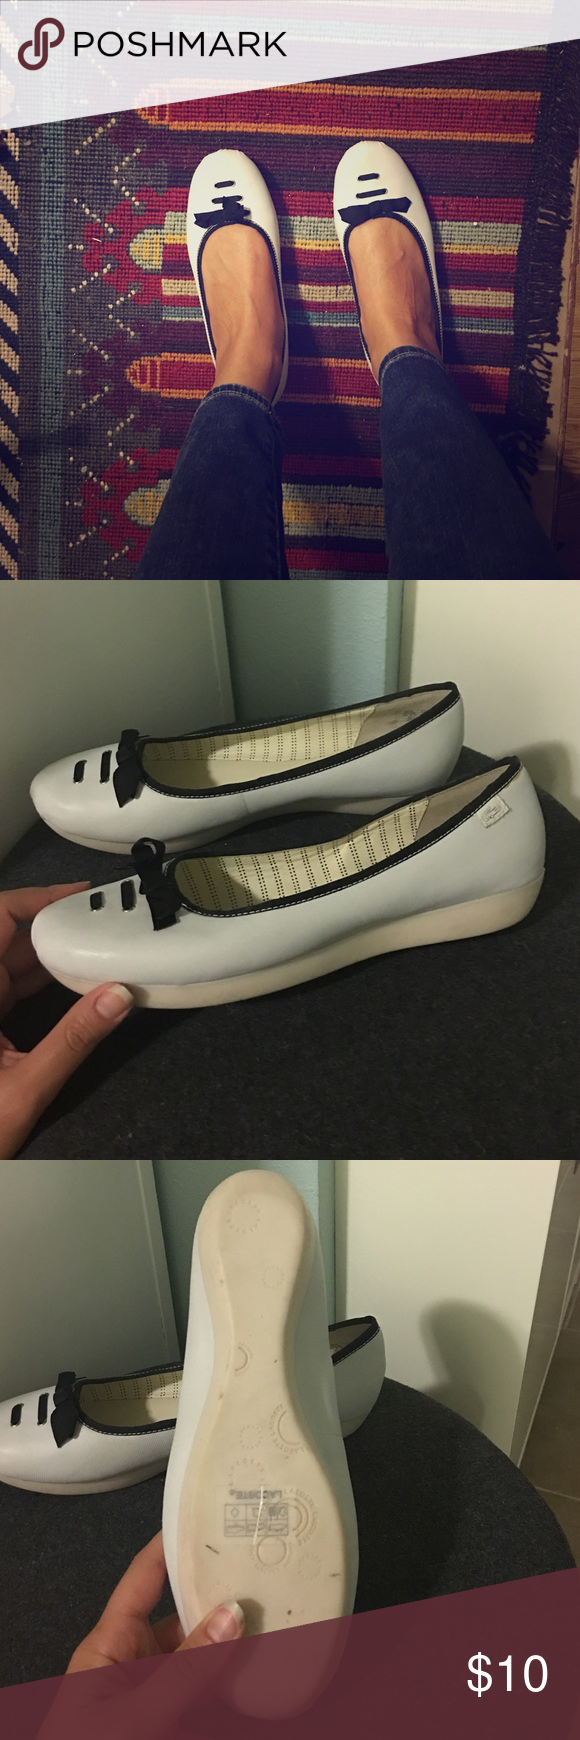 Lacoste flat Really cute minimalist now flat by Lacoste. Never worn. Lacoste Shoes Flats & Loafers